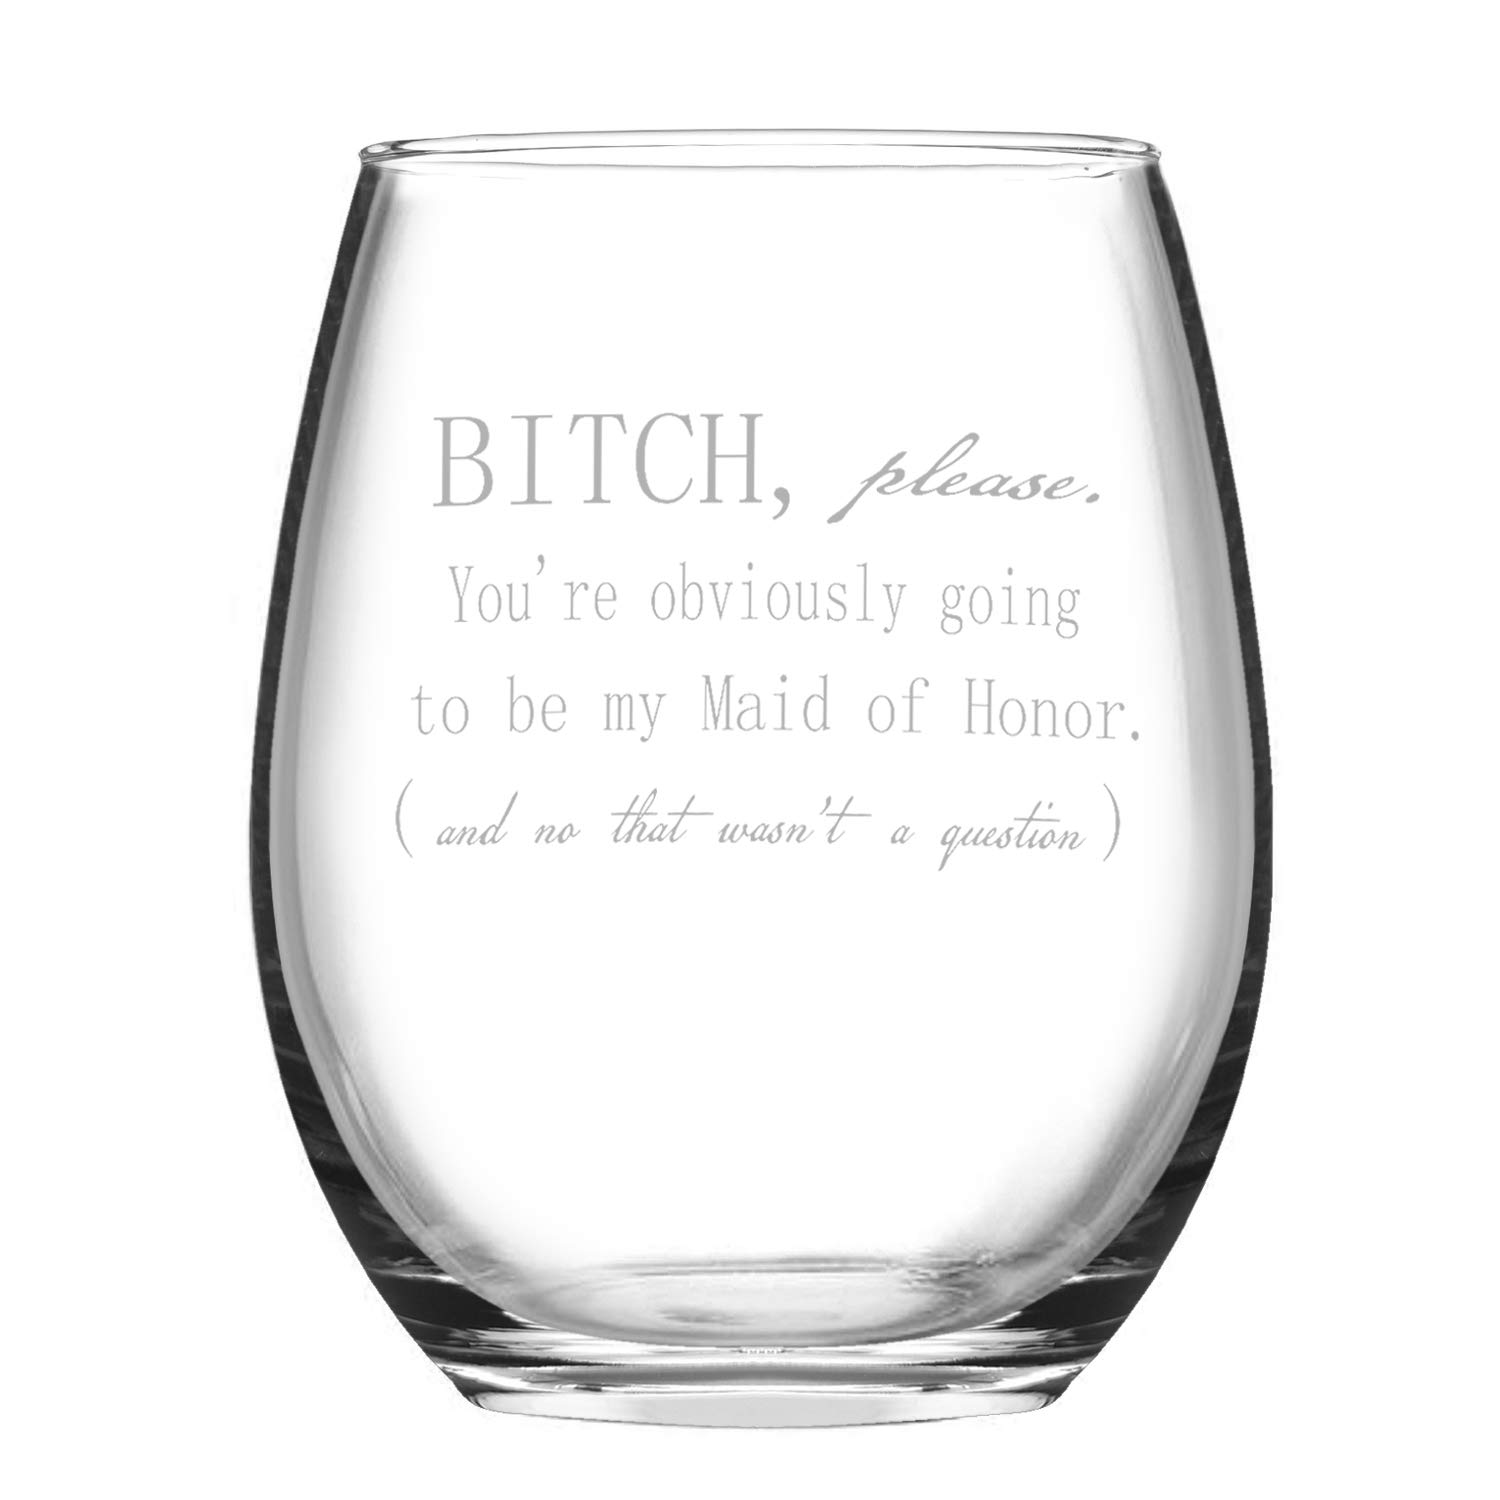 Wine Glass Fairy Godmother Funny Stemless Wine Glass 15oz Novelty Gift Funny Glass for Her Mom Wife Girlfriend Sister Besties Friends BFF Women Birthday